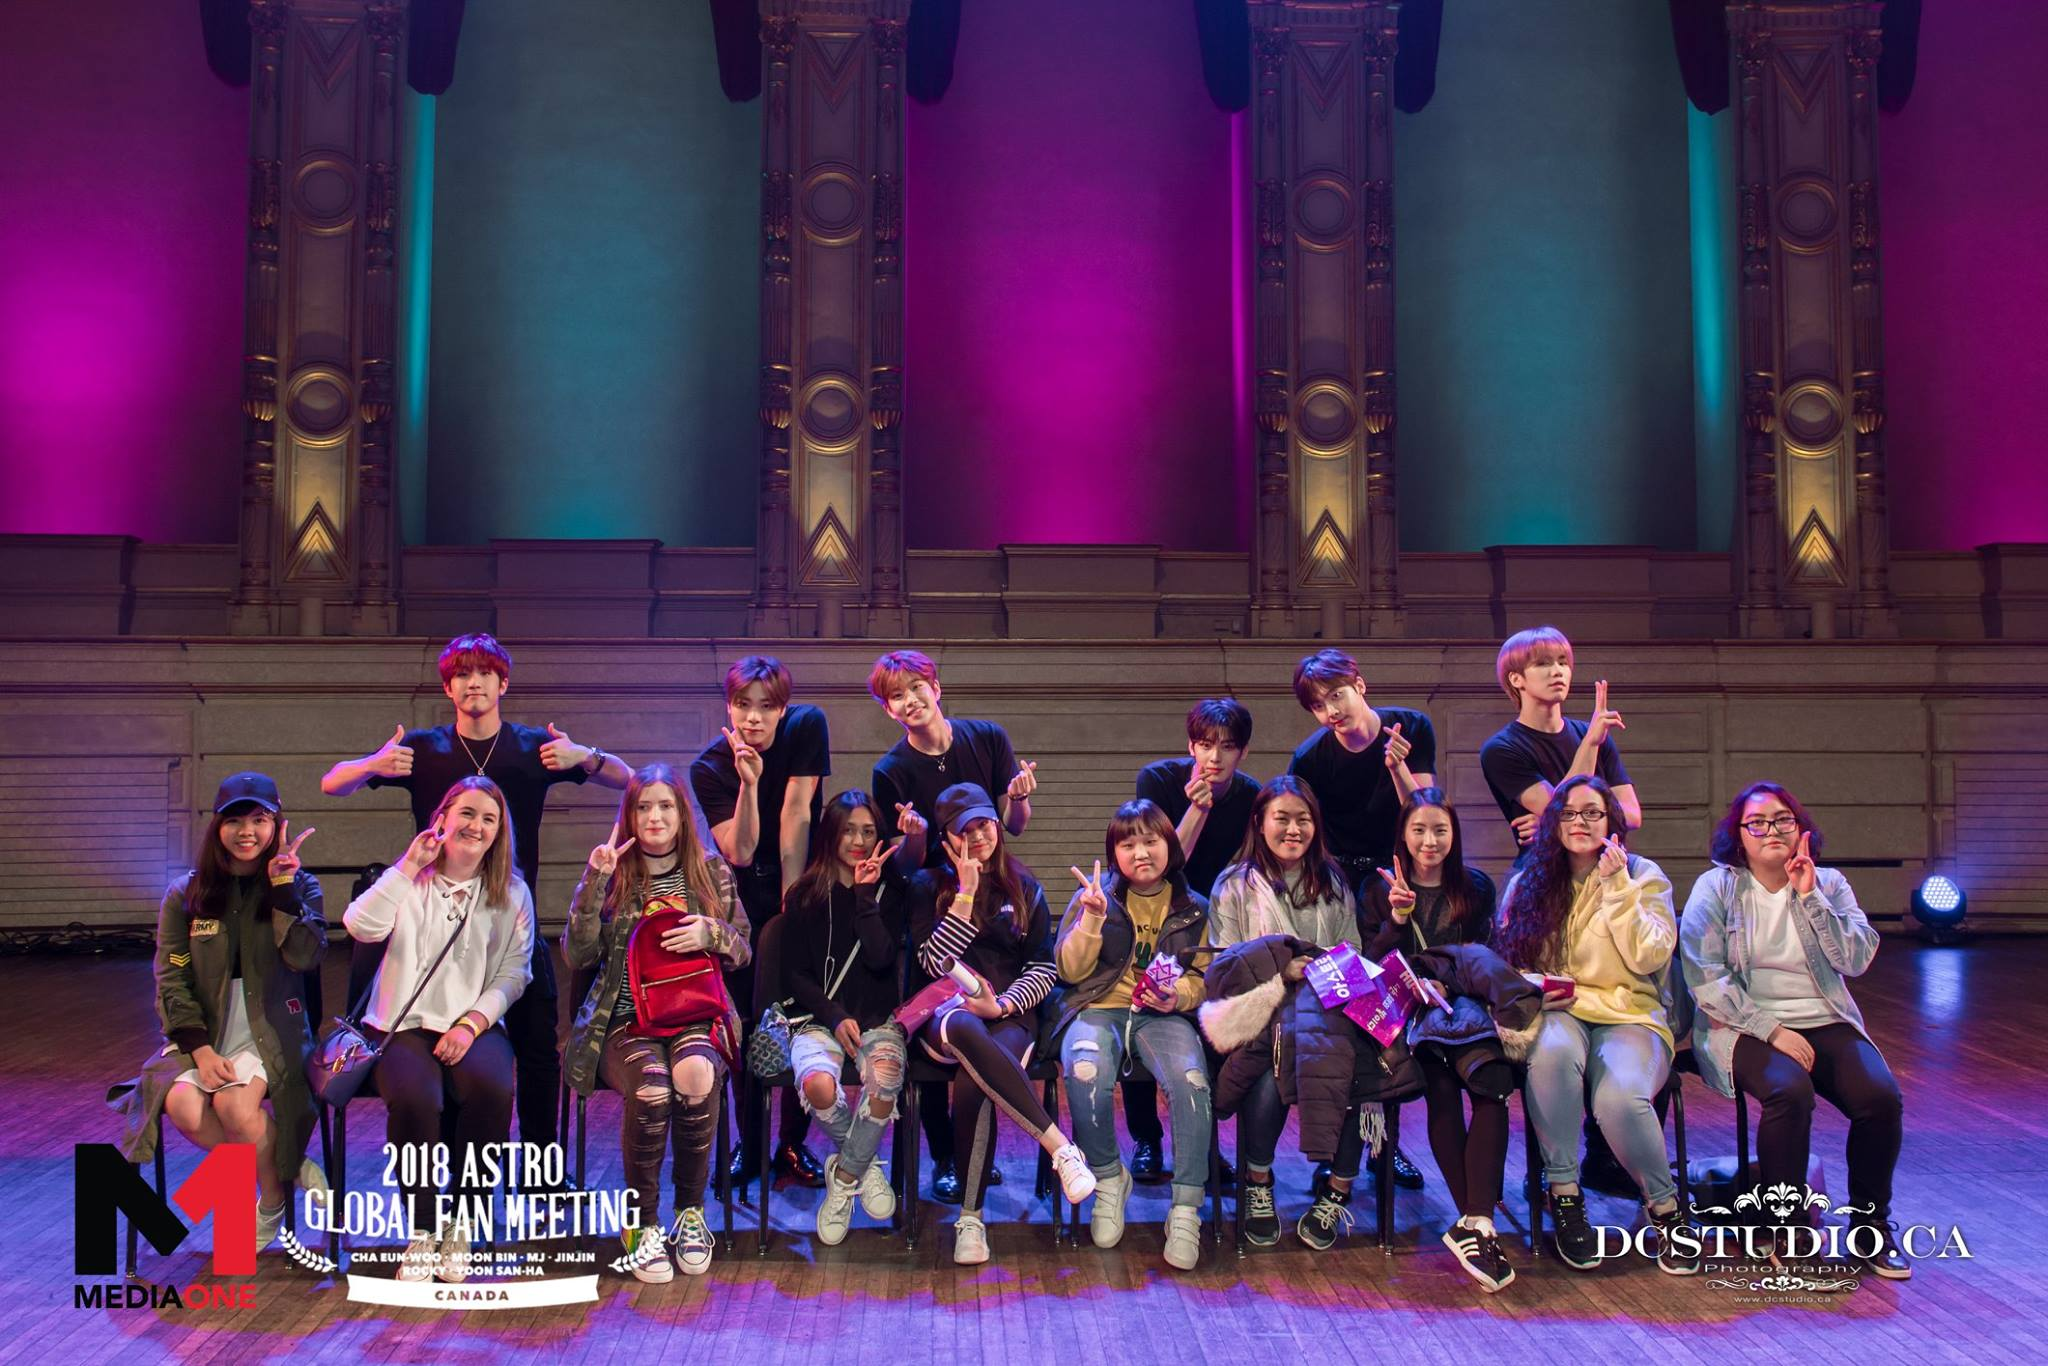 Selena at the 2018 ASTRO Global Fan Meeting in Canada. She's the 4th from the right, in a grey top, sitting between Cha Eunwoo and Yoon Sanha.